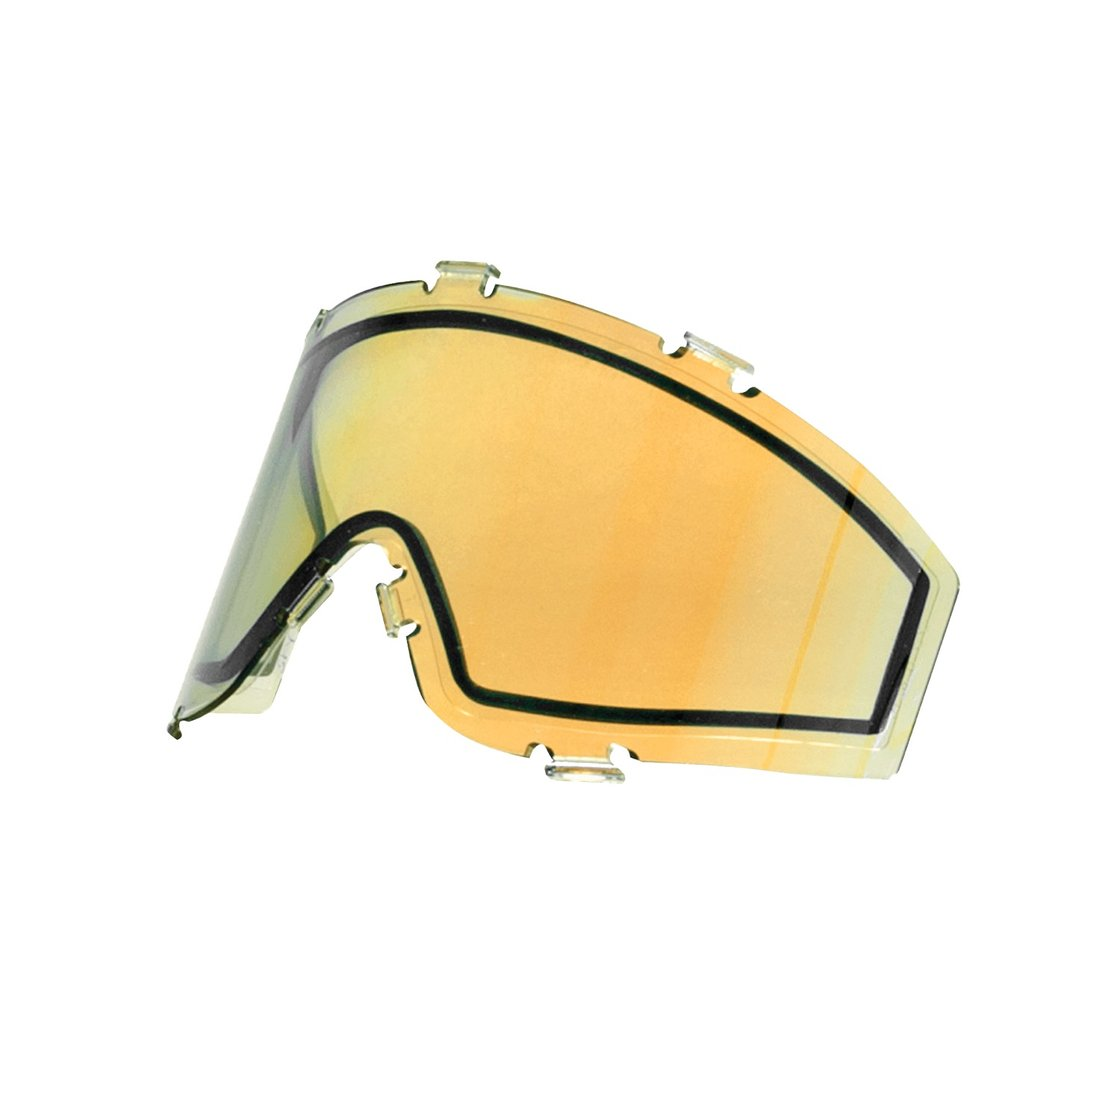 JT Spectra Prizm Dual-Pane/Thermal Lens - Gold